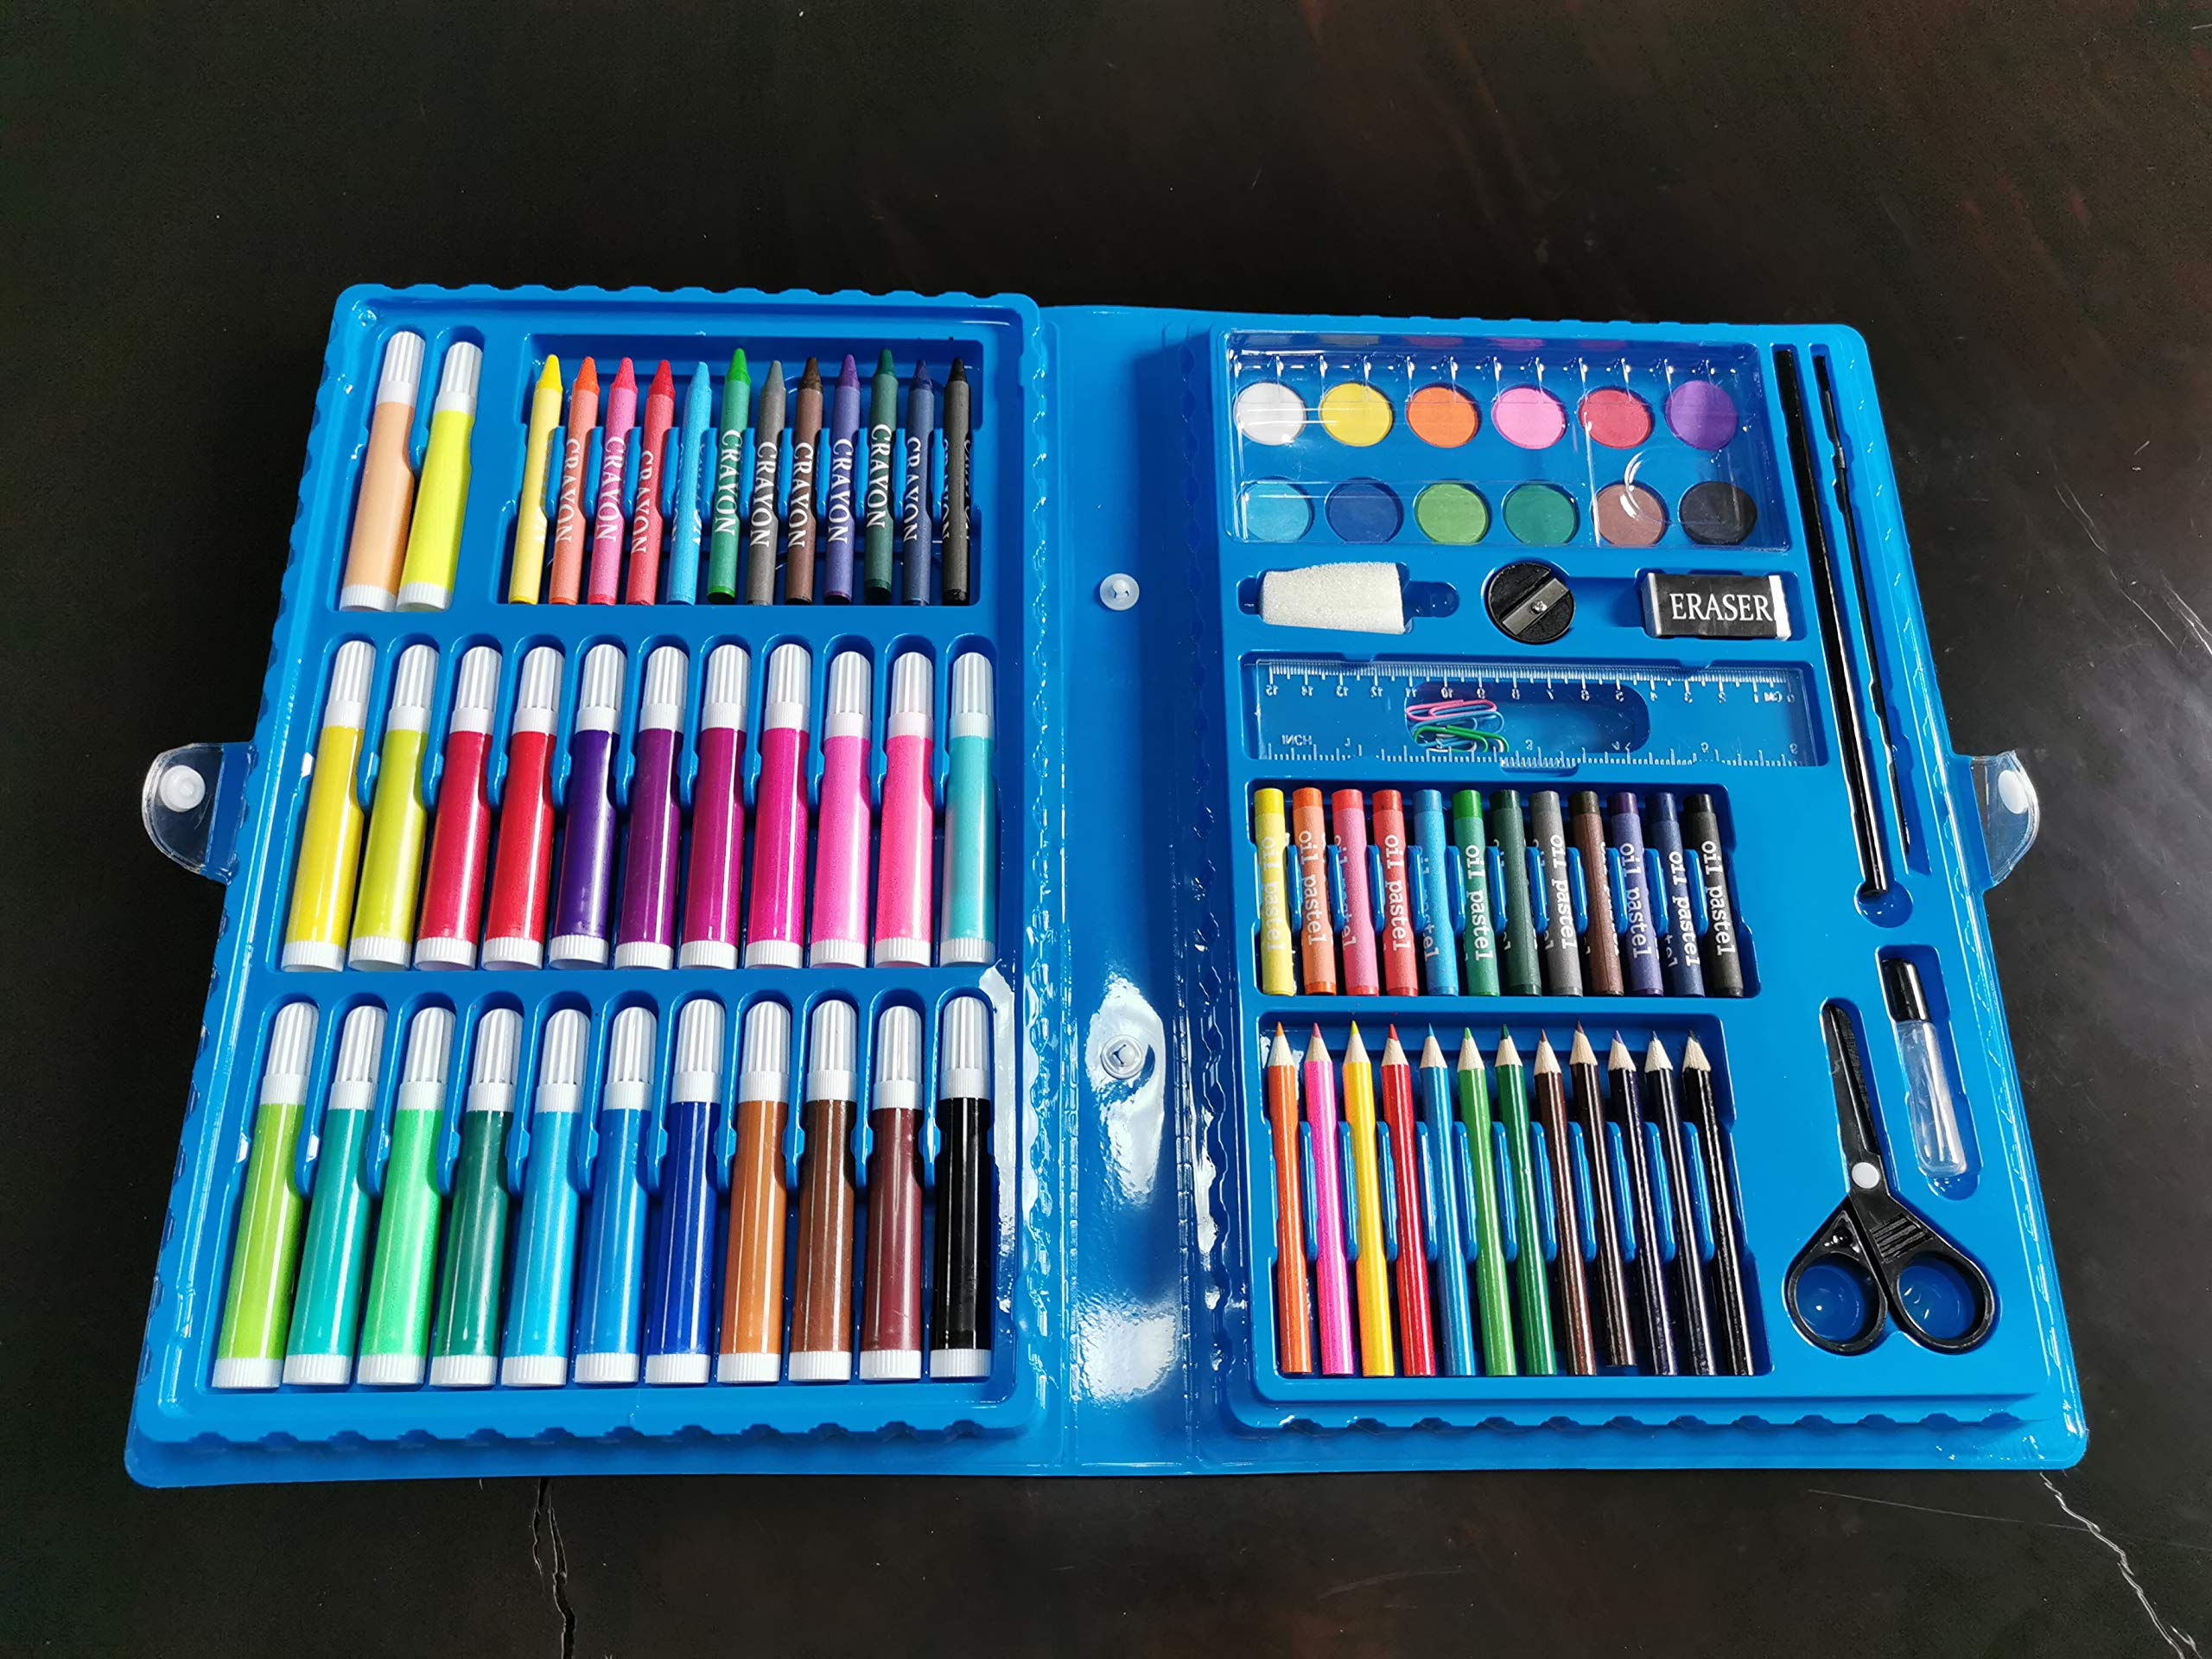 KICO Colored Pencils 150 Unique Colors (No Duplicates) Art Drawing Colored Pencils Set with Case